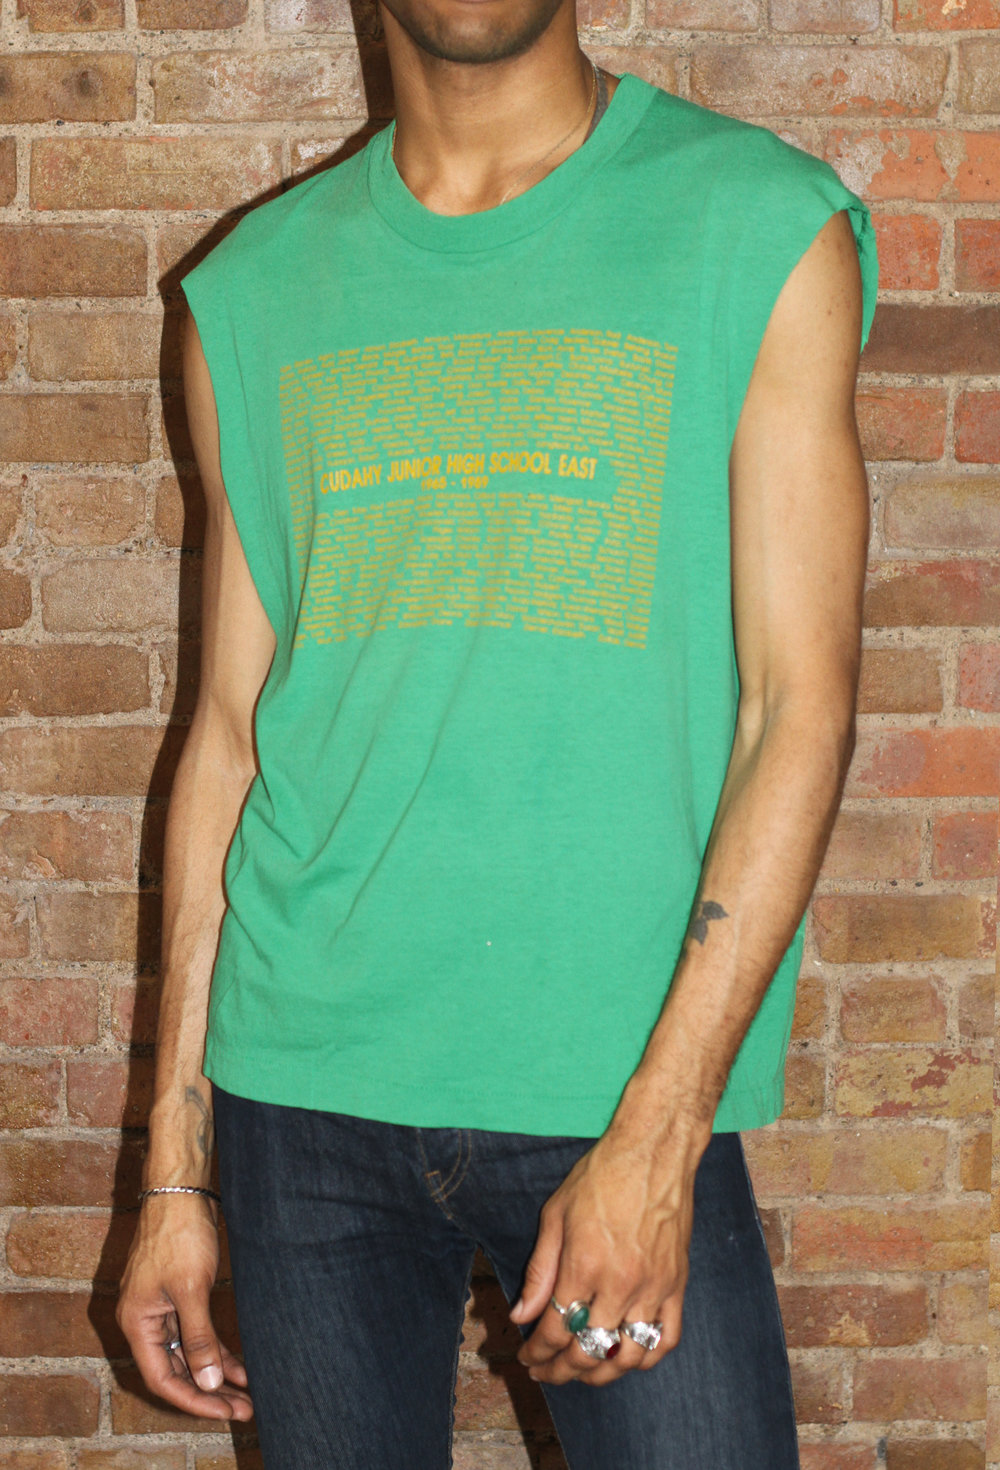 VINTAGE 60s GREEN SLEEVELESS TEE - HEARTLESS CLOSETThis is sexy, classic, and versatile. Timeless style of vintage curated by CCO Drew Miles Davis. Splash the scene with this easy piece. Layer it or show off some tattoos.